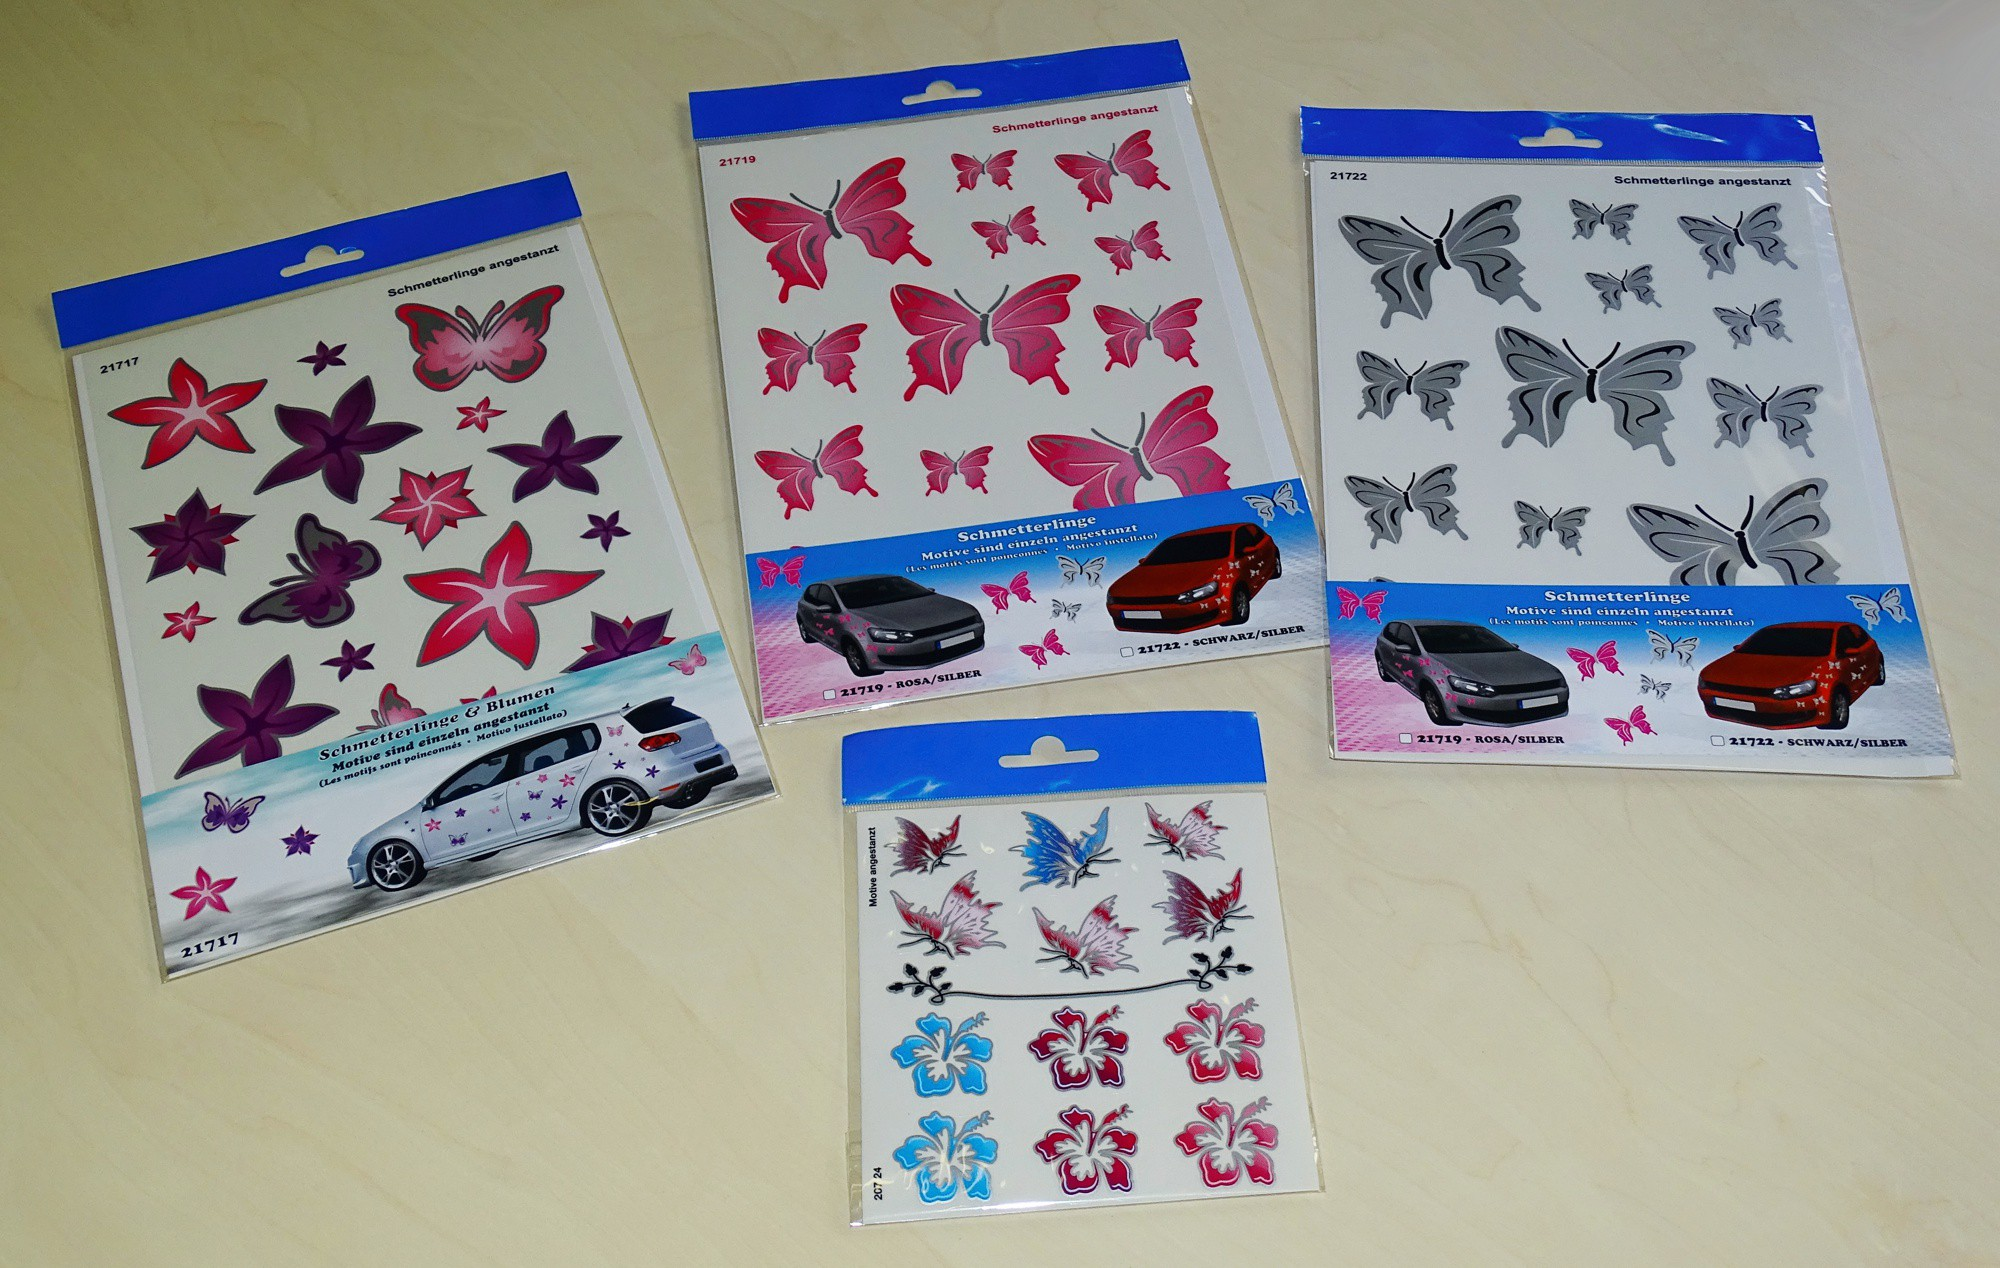 Sticker Butterflies and Hibiscus Flower 150 x 140 mm – Bild 2